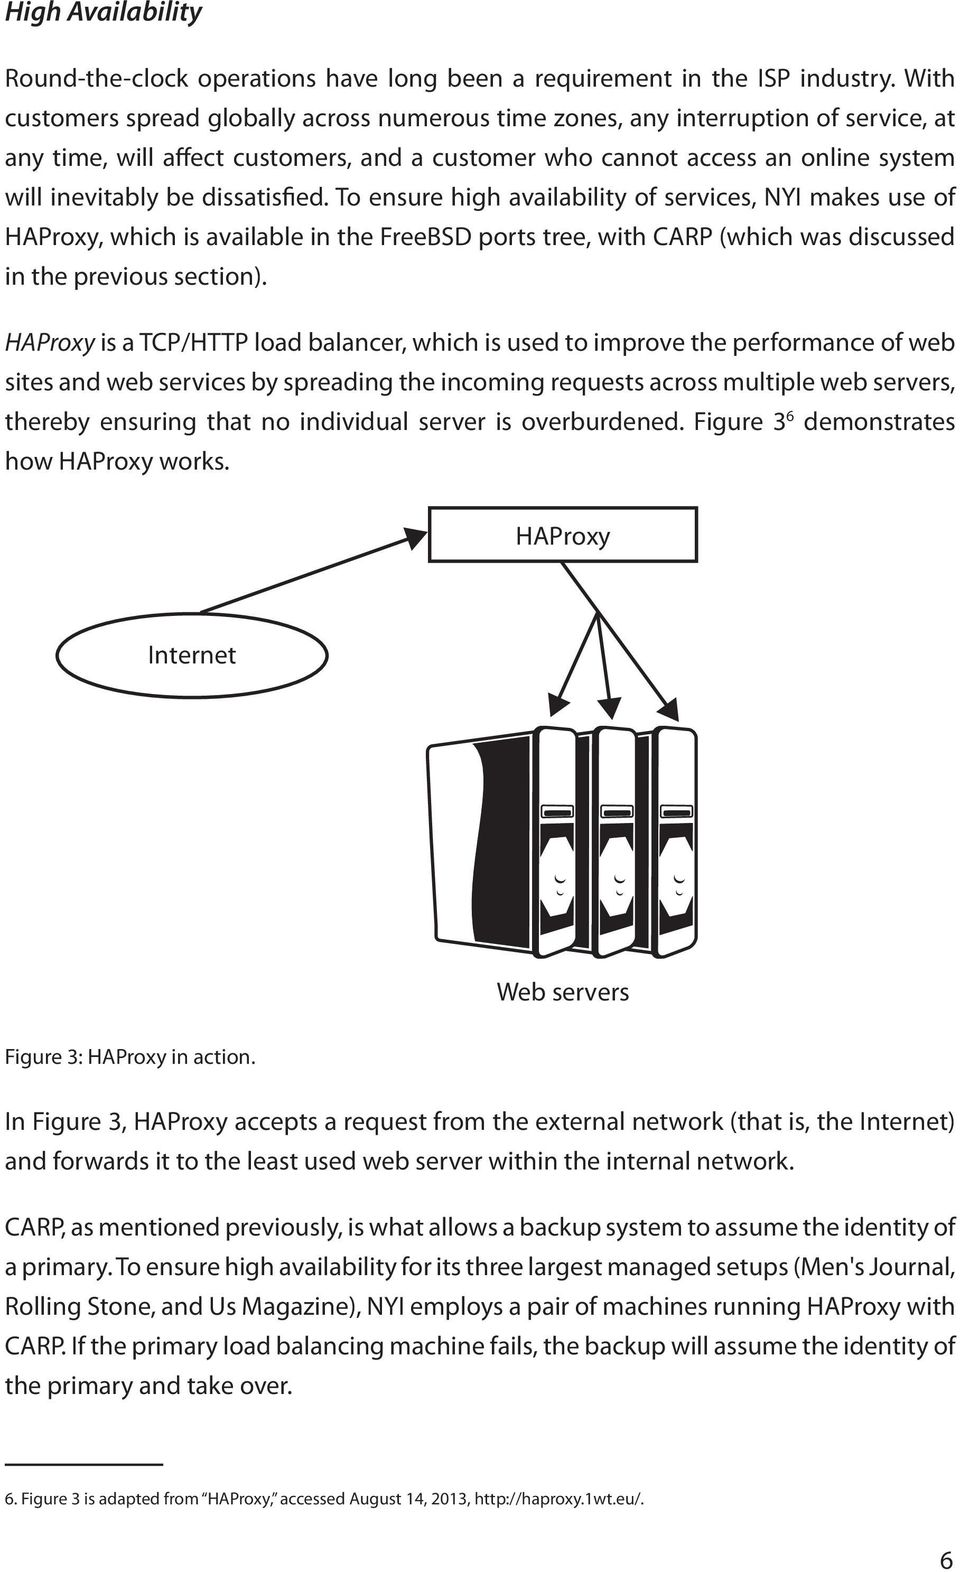 dissatisfied. To ensure high availability of services, NYI makes use of HAProxy, which is available in the FreeBSD ports tree, with CARP (which was discussed in the previous section).